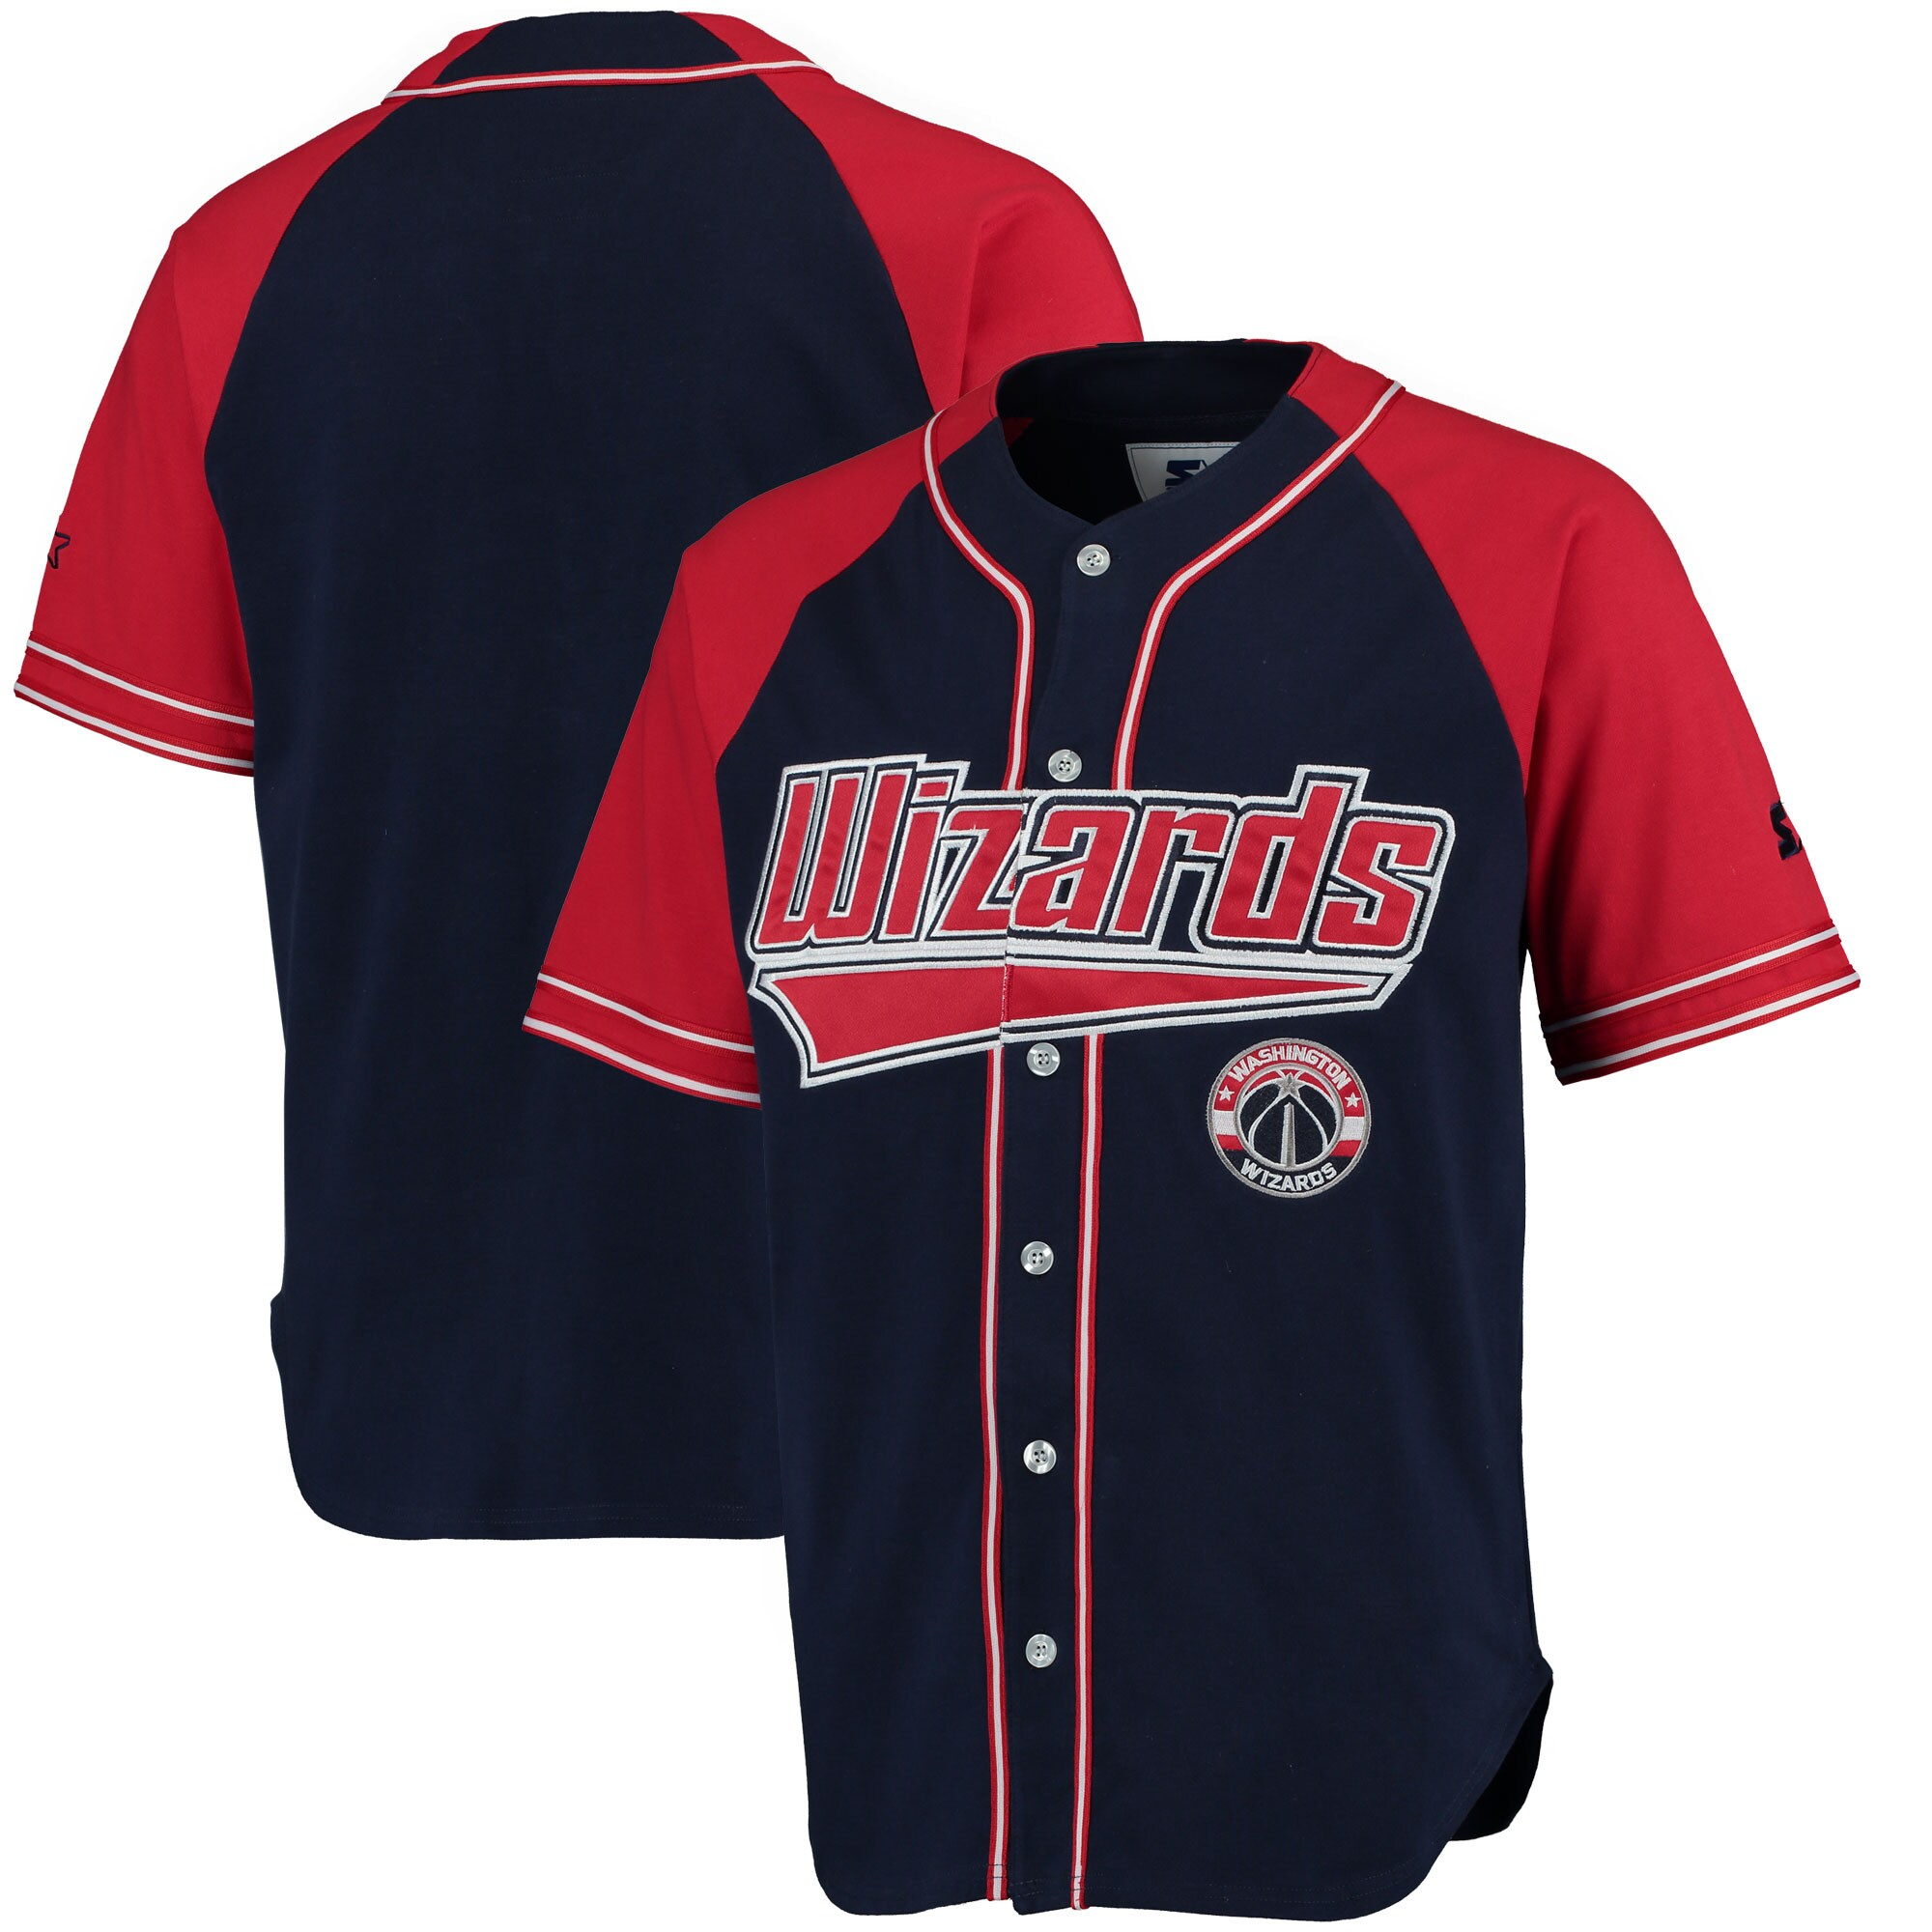 Washington Wizards Starter Baseball Jersey - Red/Red